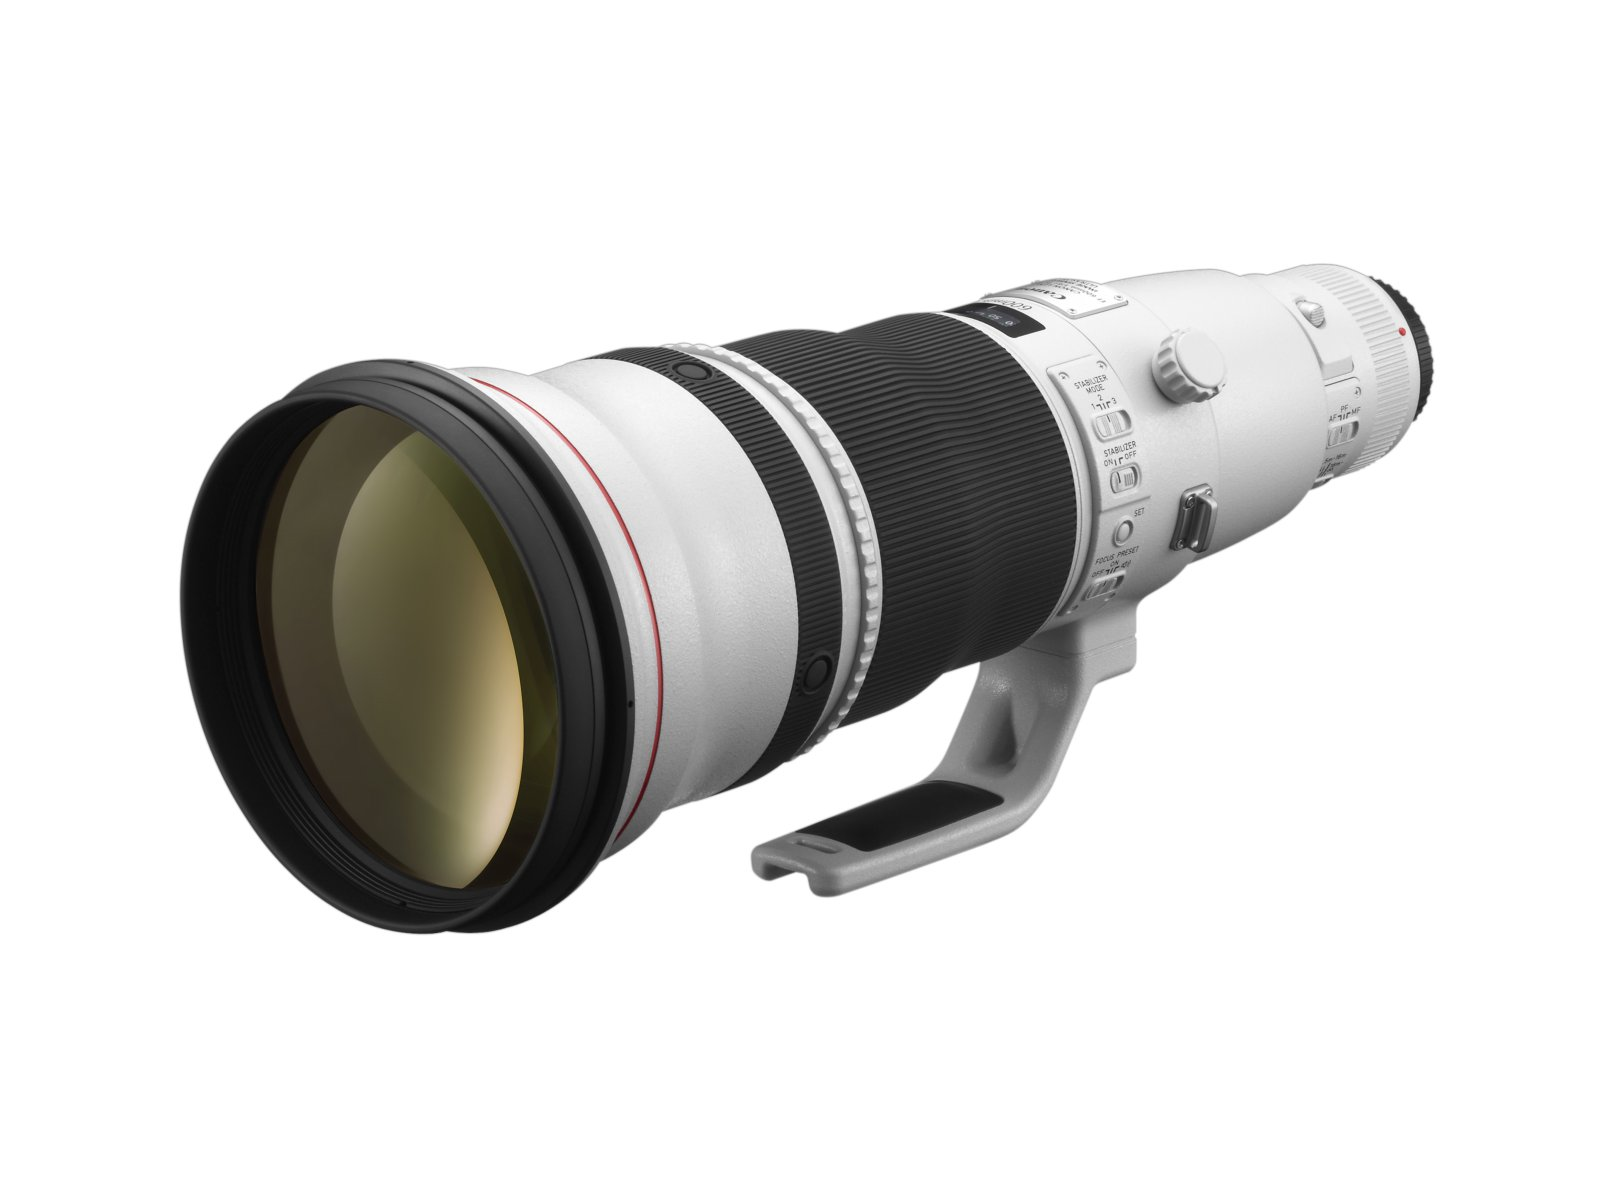 EF 600mm f/4 IS II USM